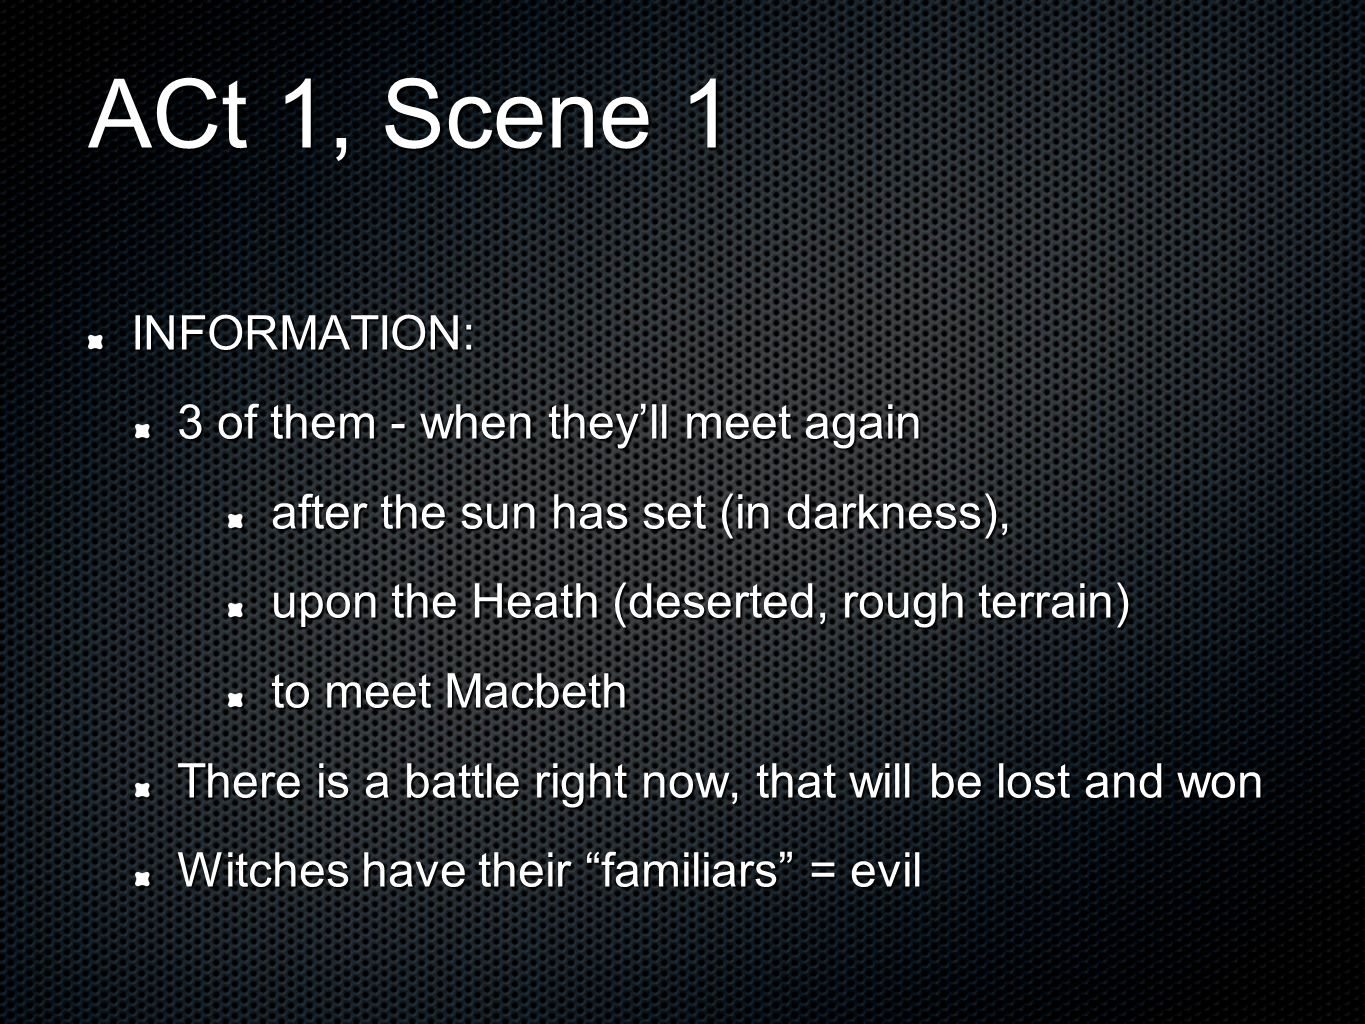 ACt 1, Scene 1 INFORMATION: 3 of them - when they'll meet again after the sun has set (in darkness), upon the Heath (deserted, rough terrain) to meet Macbeth There is a battle right now, that will be lost and won Witches have their familiars = evil